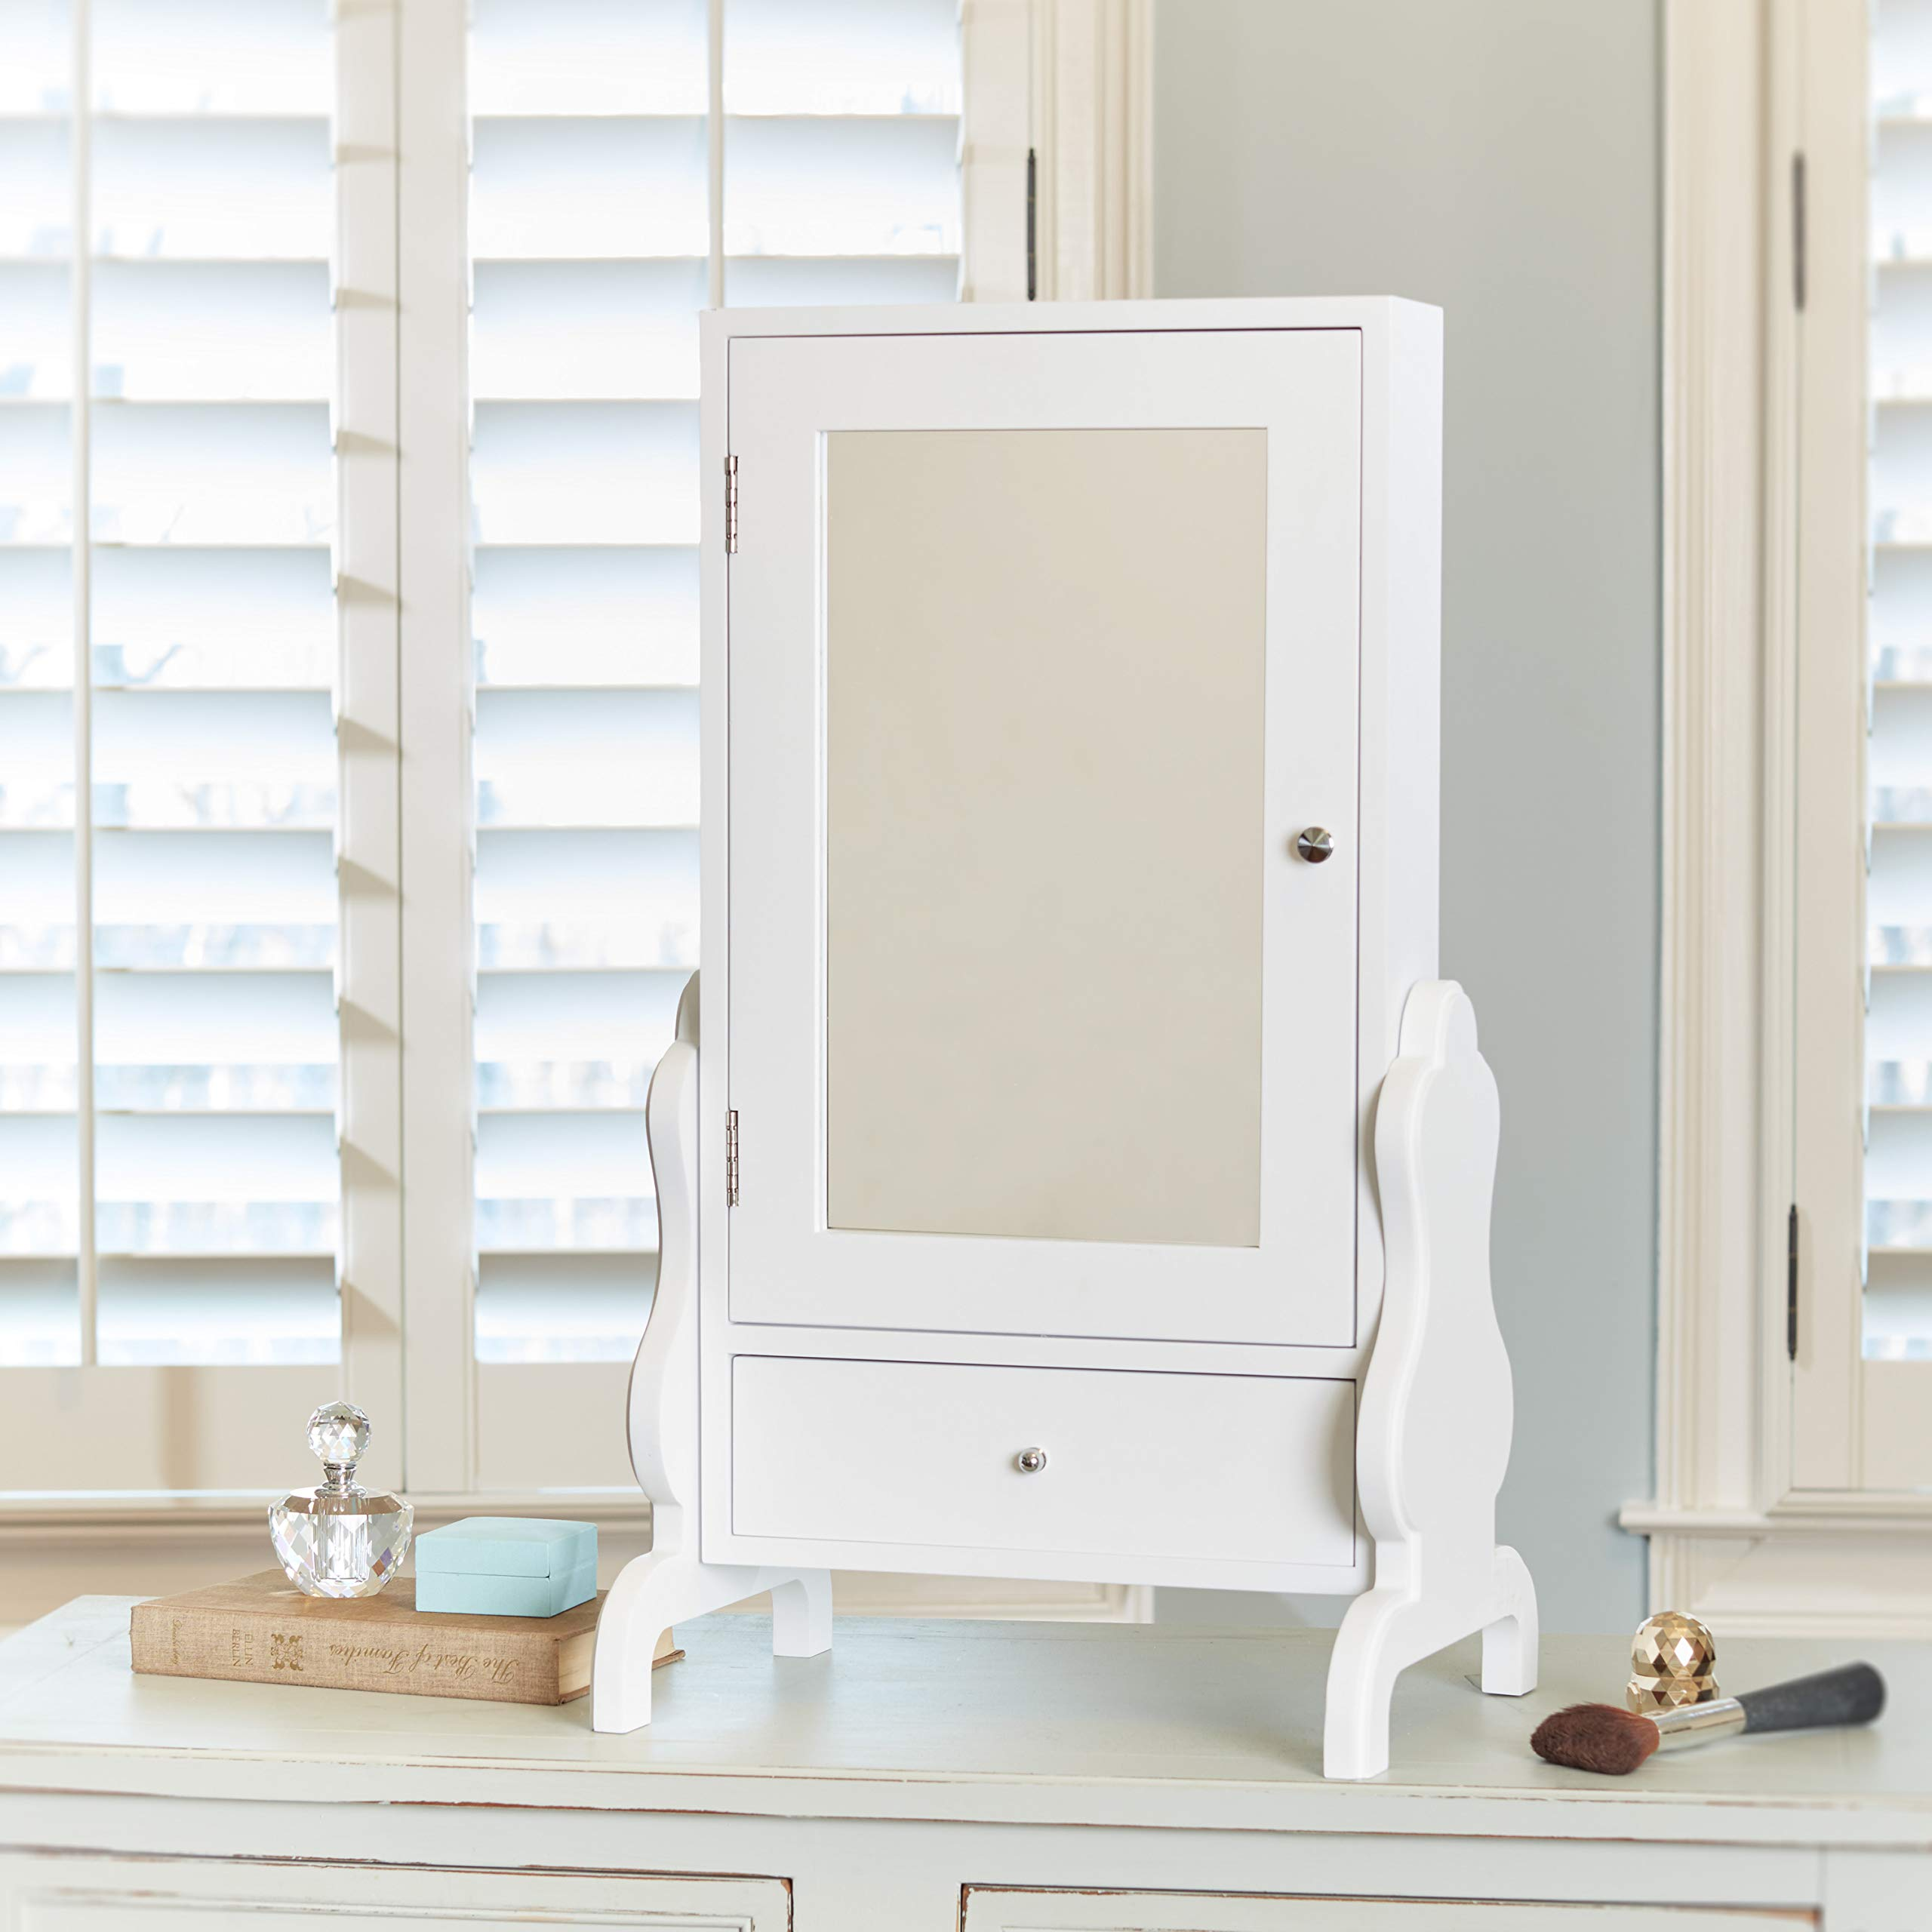 FirsTime & Co. White Tabletop Mirror with Jewelry Storage